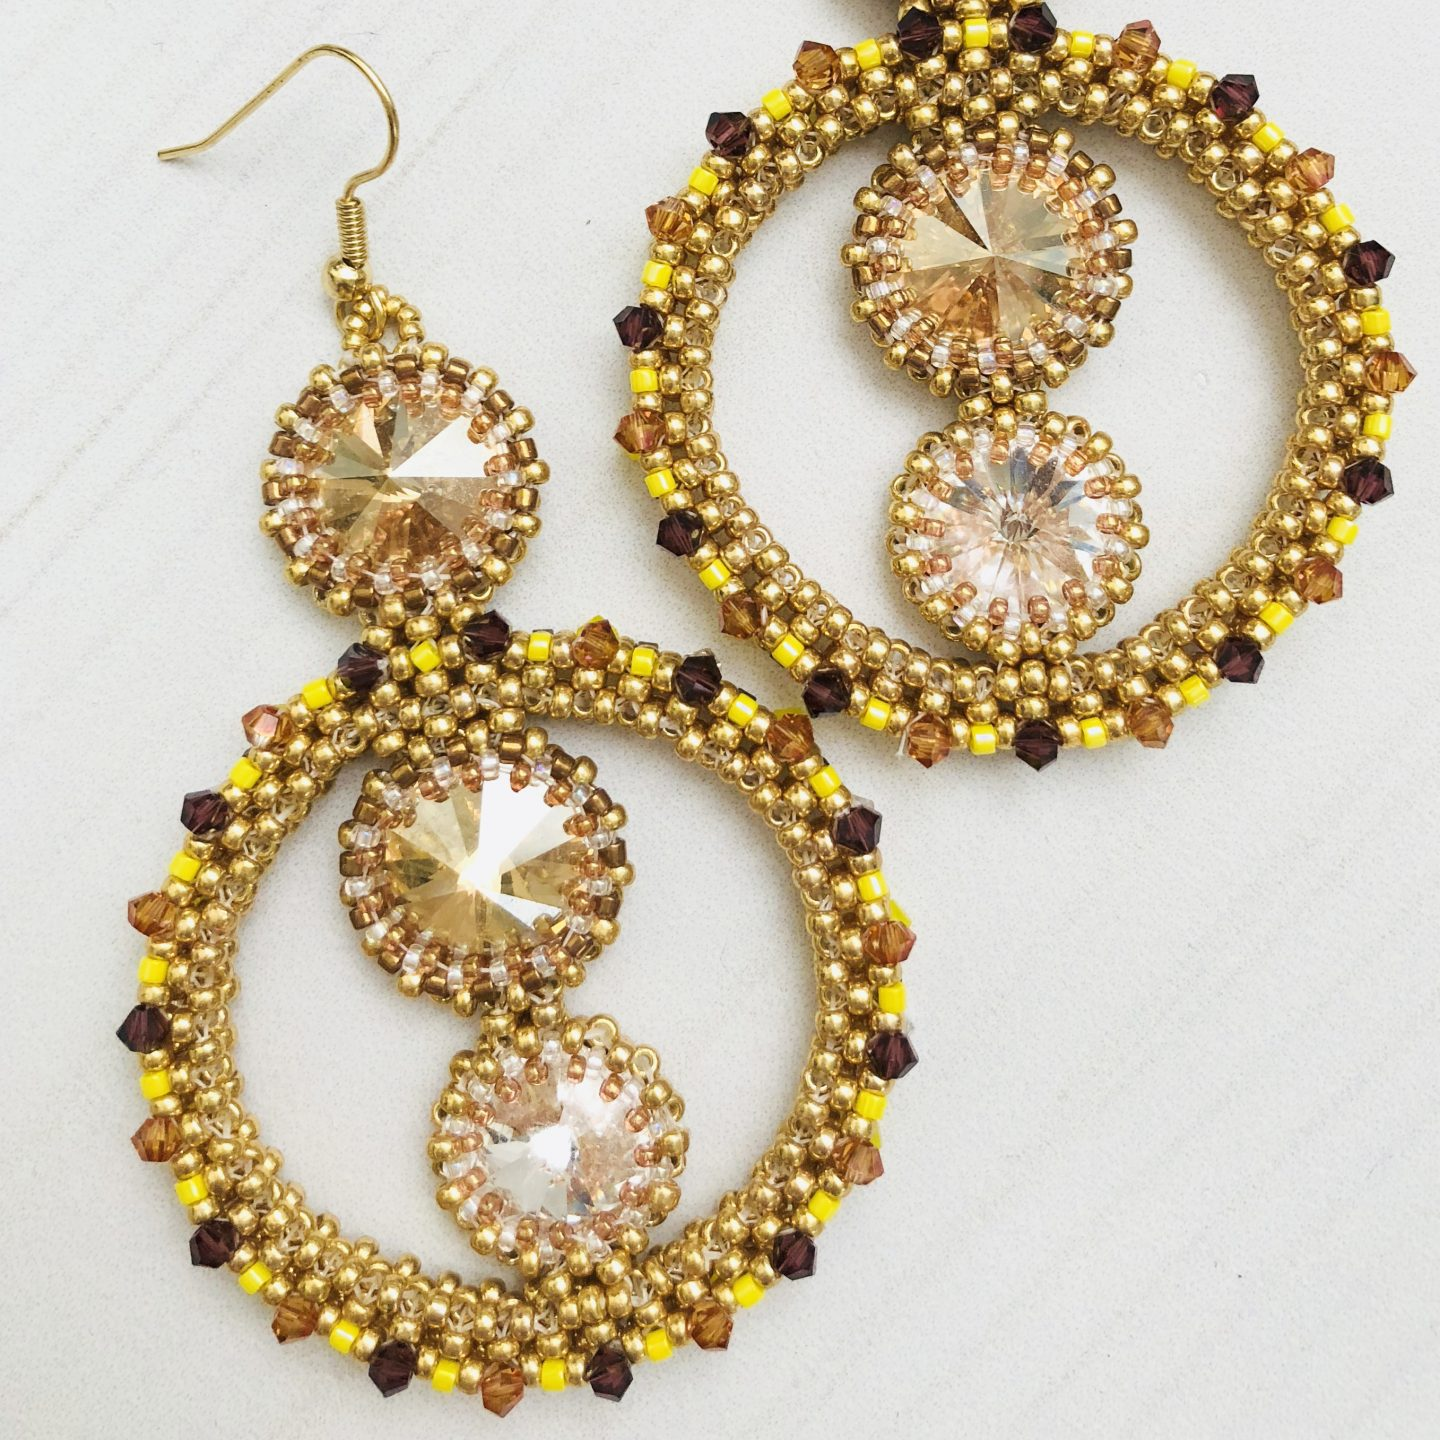 Earrings from Alicia Dewar Designs